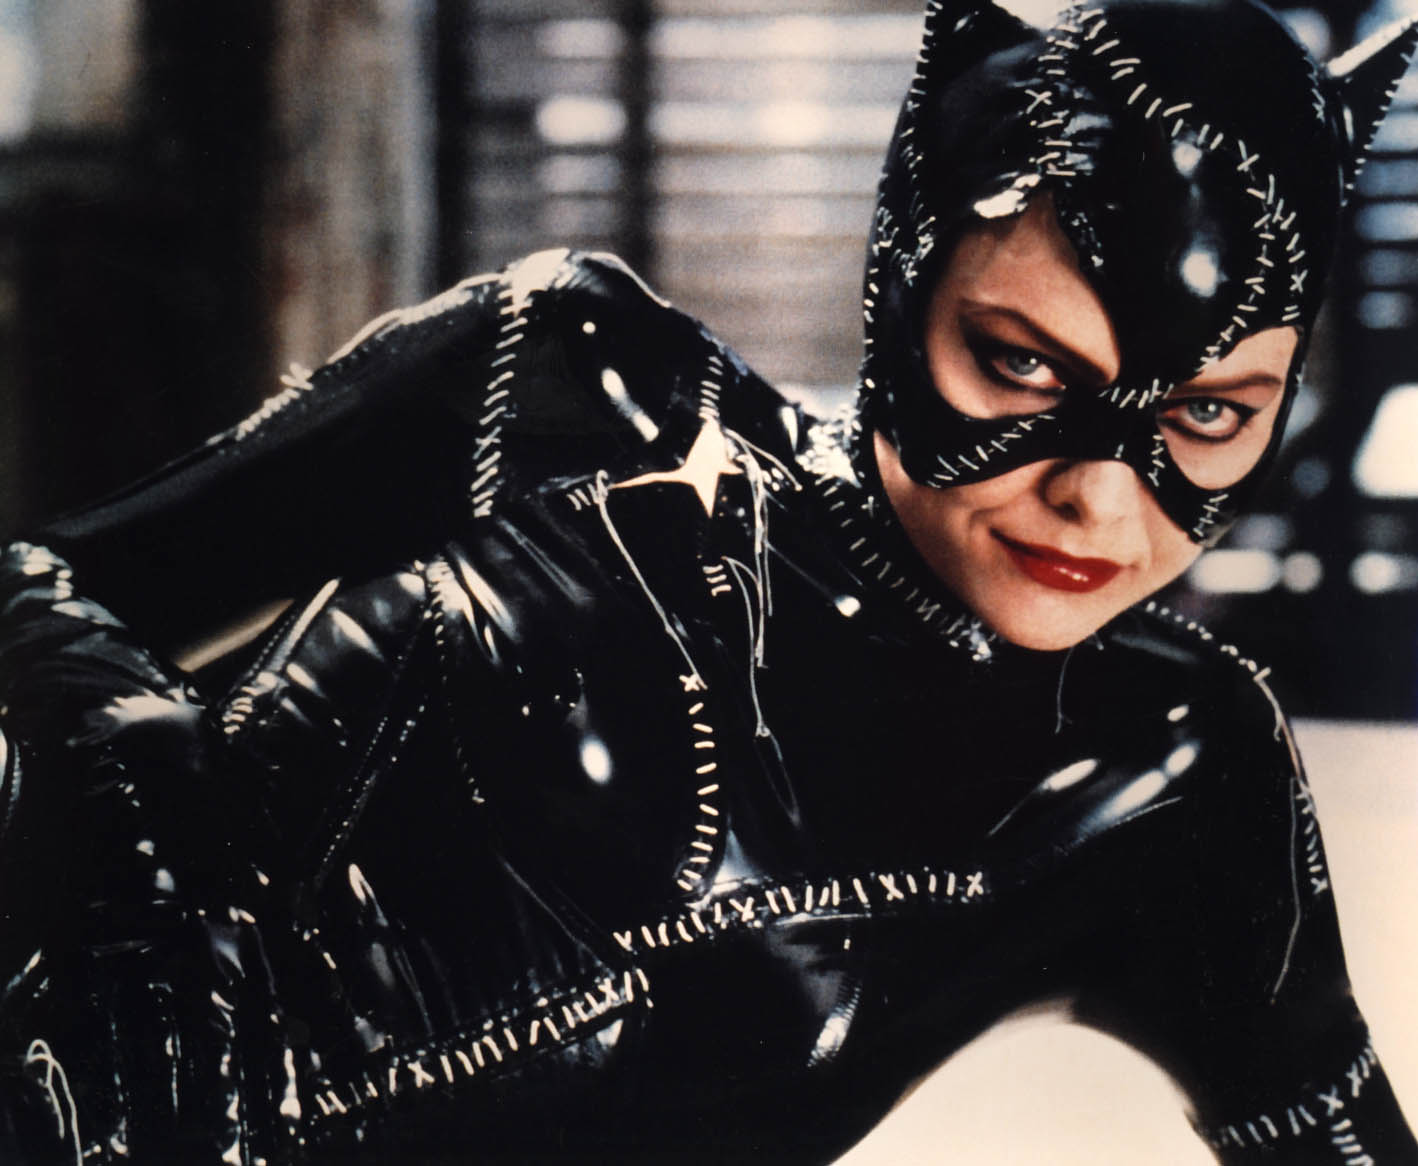 Remember the no spam rule Michelle+Pfeiffer+Catwoman